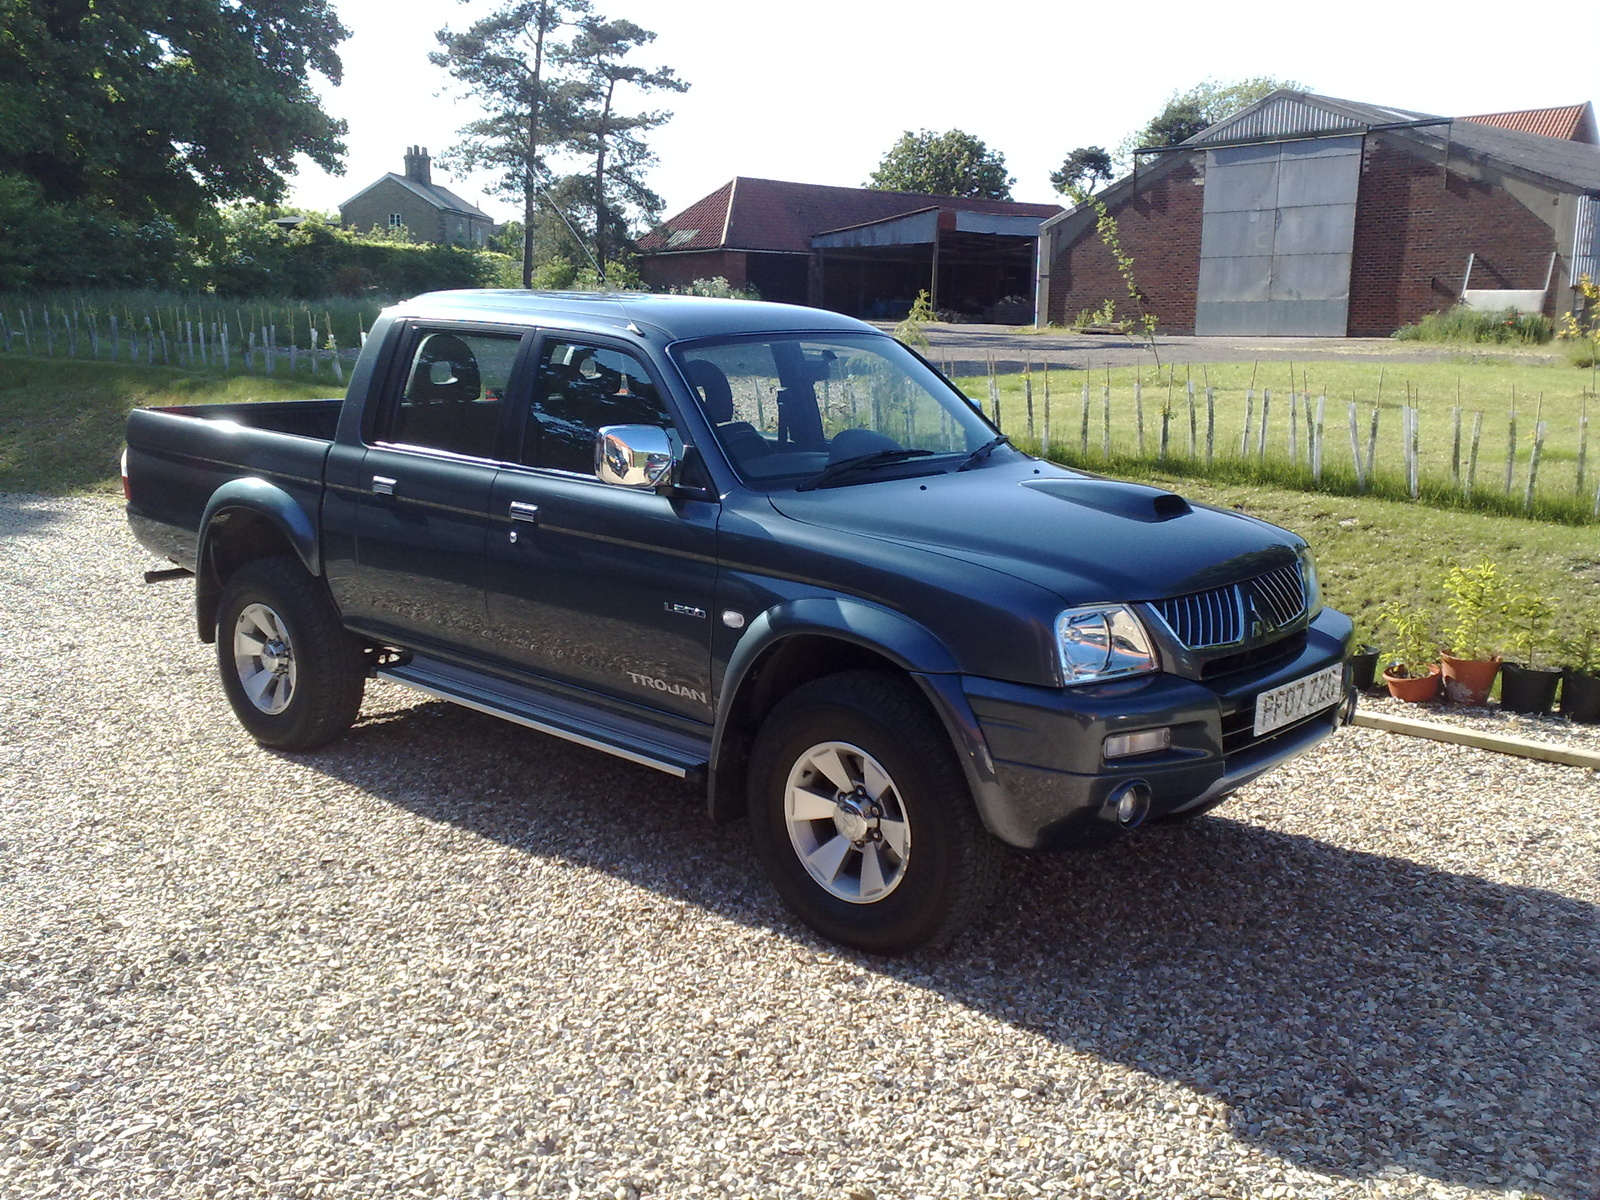 mitsubishi l200 2000 review amazing pictures and images look at the car. Black Bedroom Furniture Sets. Home Design Ideas